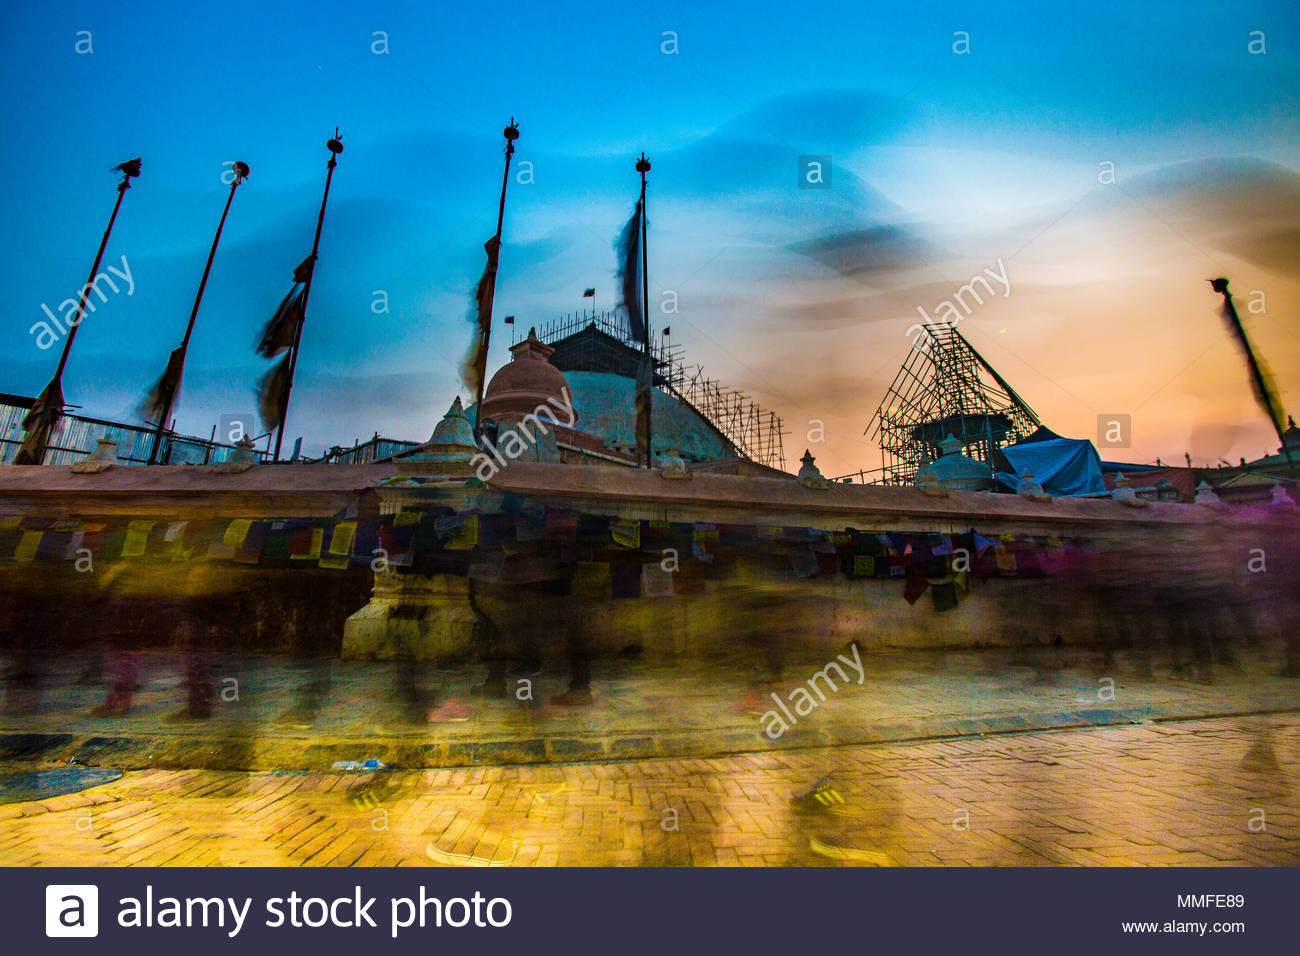 Worshipers in blurred swirl encircle a shrine with prayer flags as dusk approaches. - Stock Image